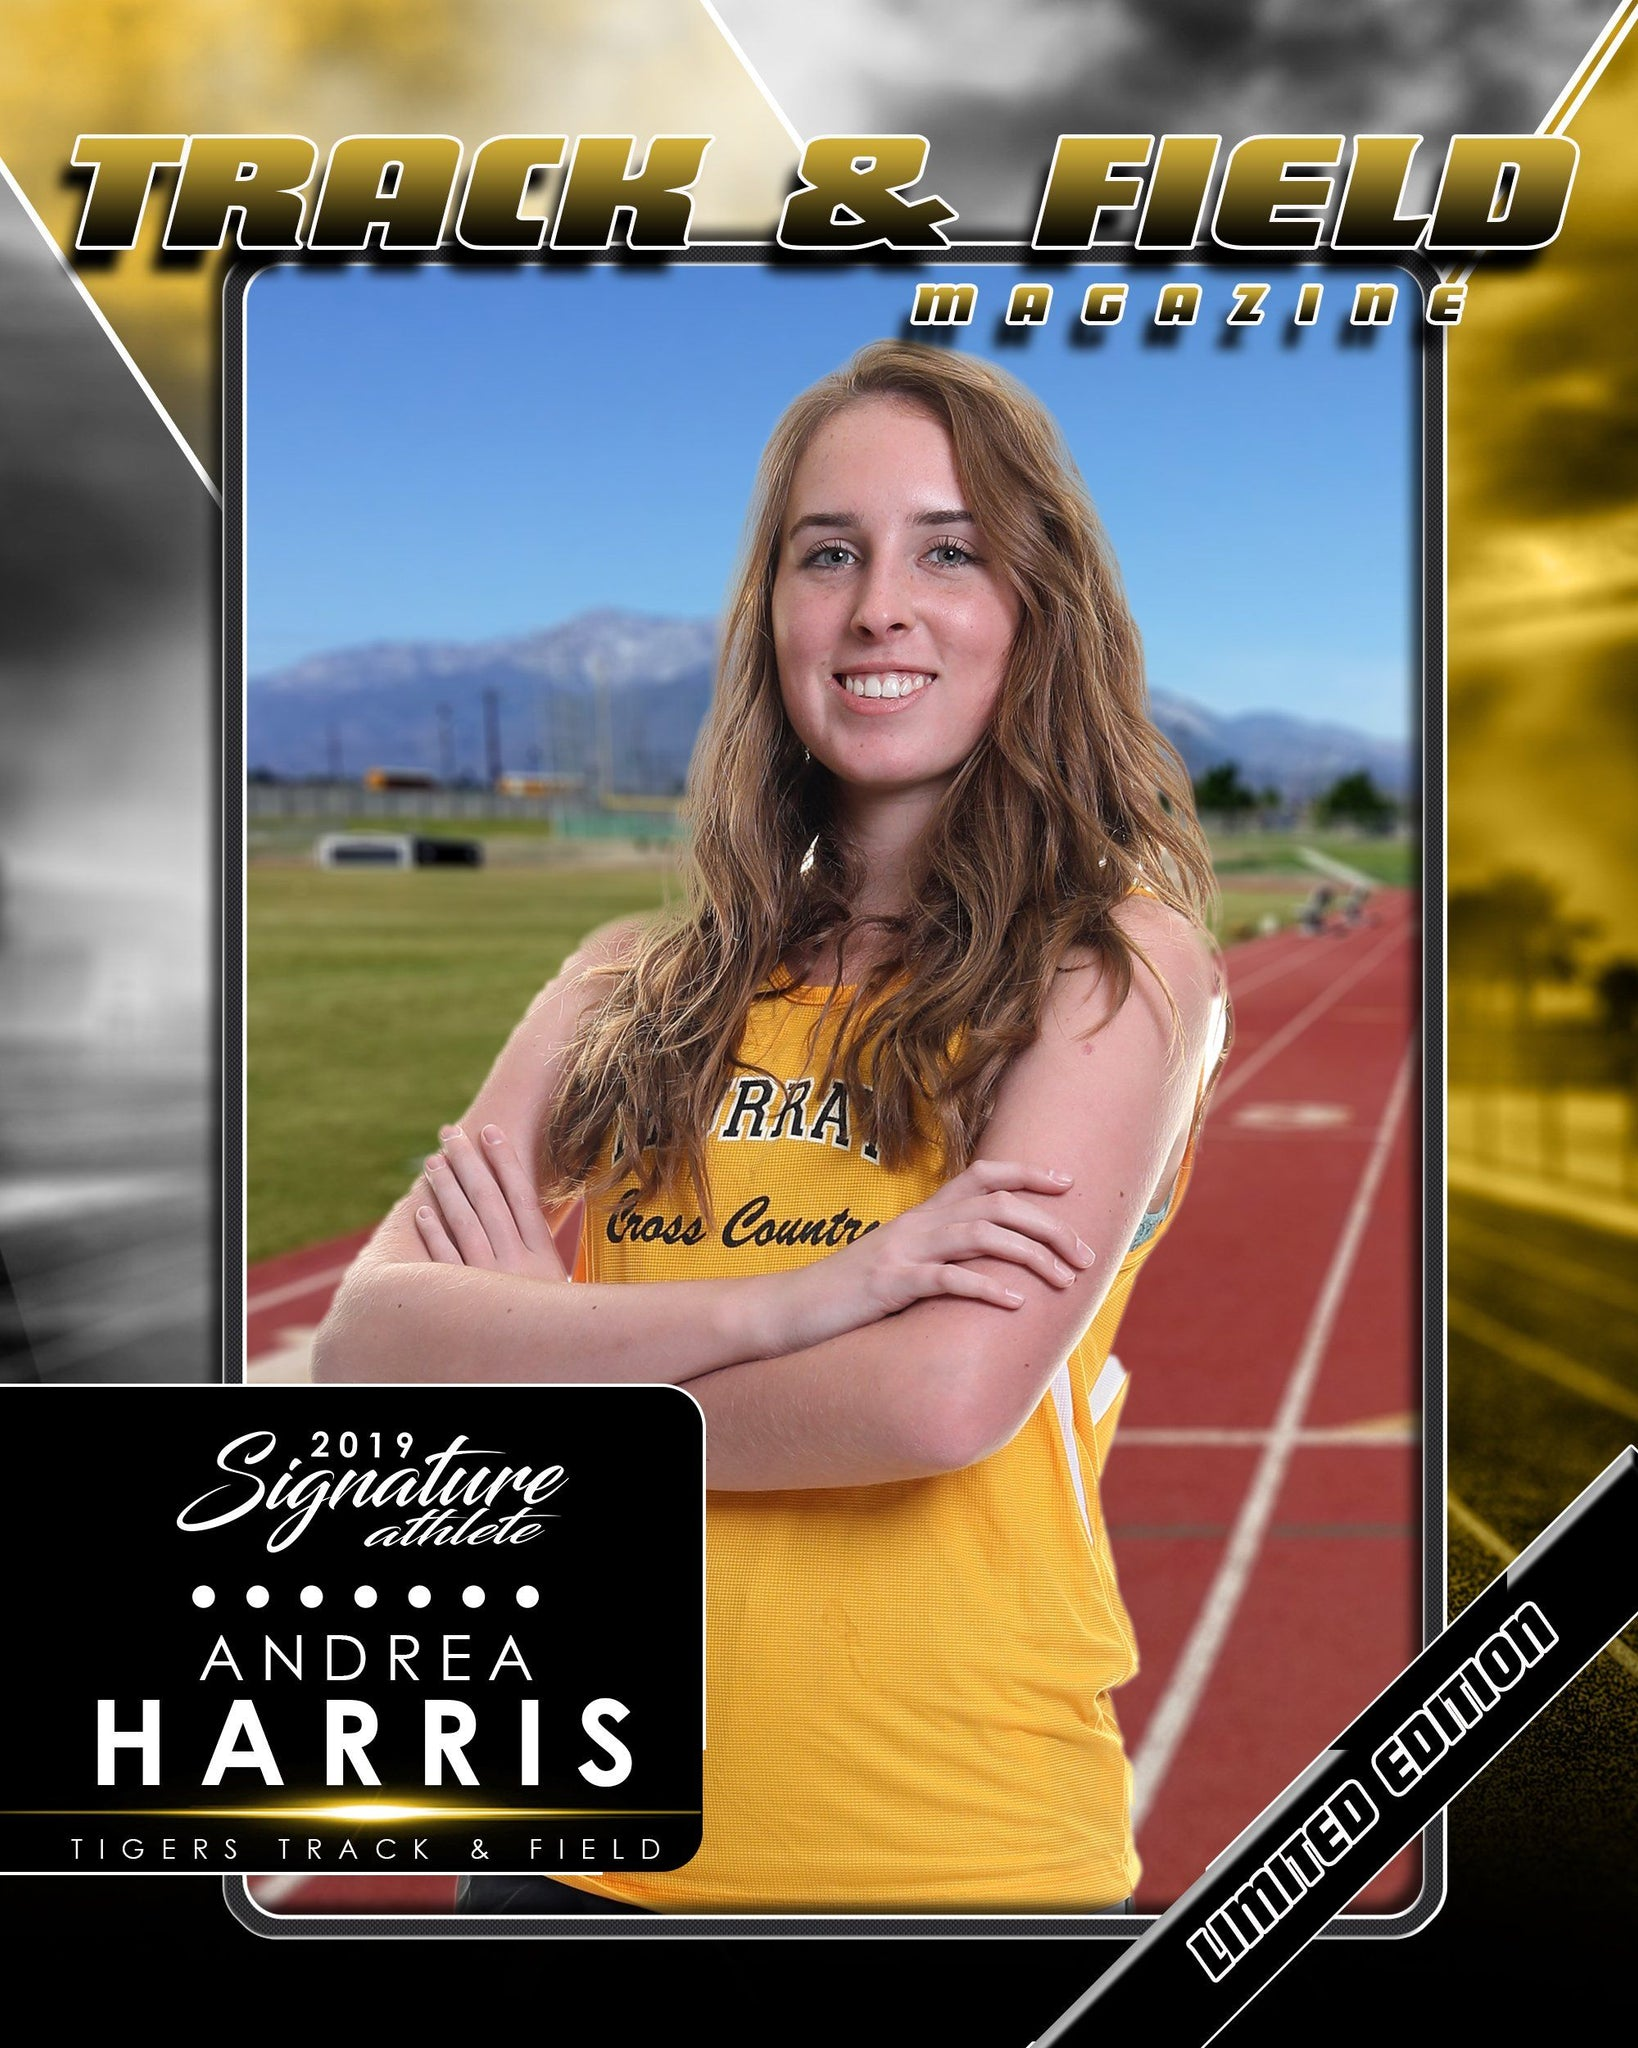 Signature Player - Track & Field - V2 - Drop-In Magazine Cover Template-Photoshop Template - Photo Solutions